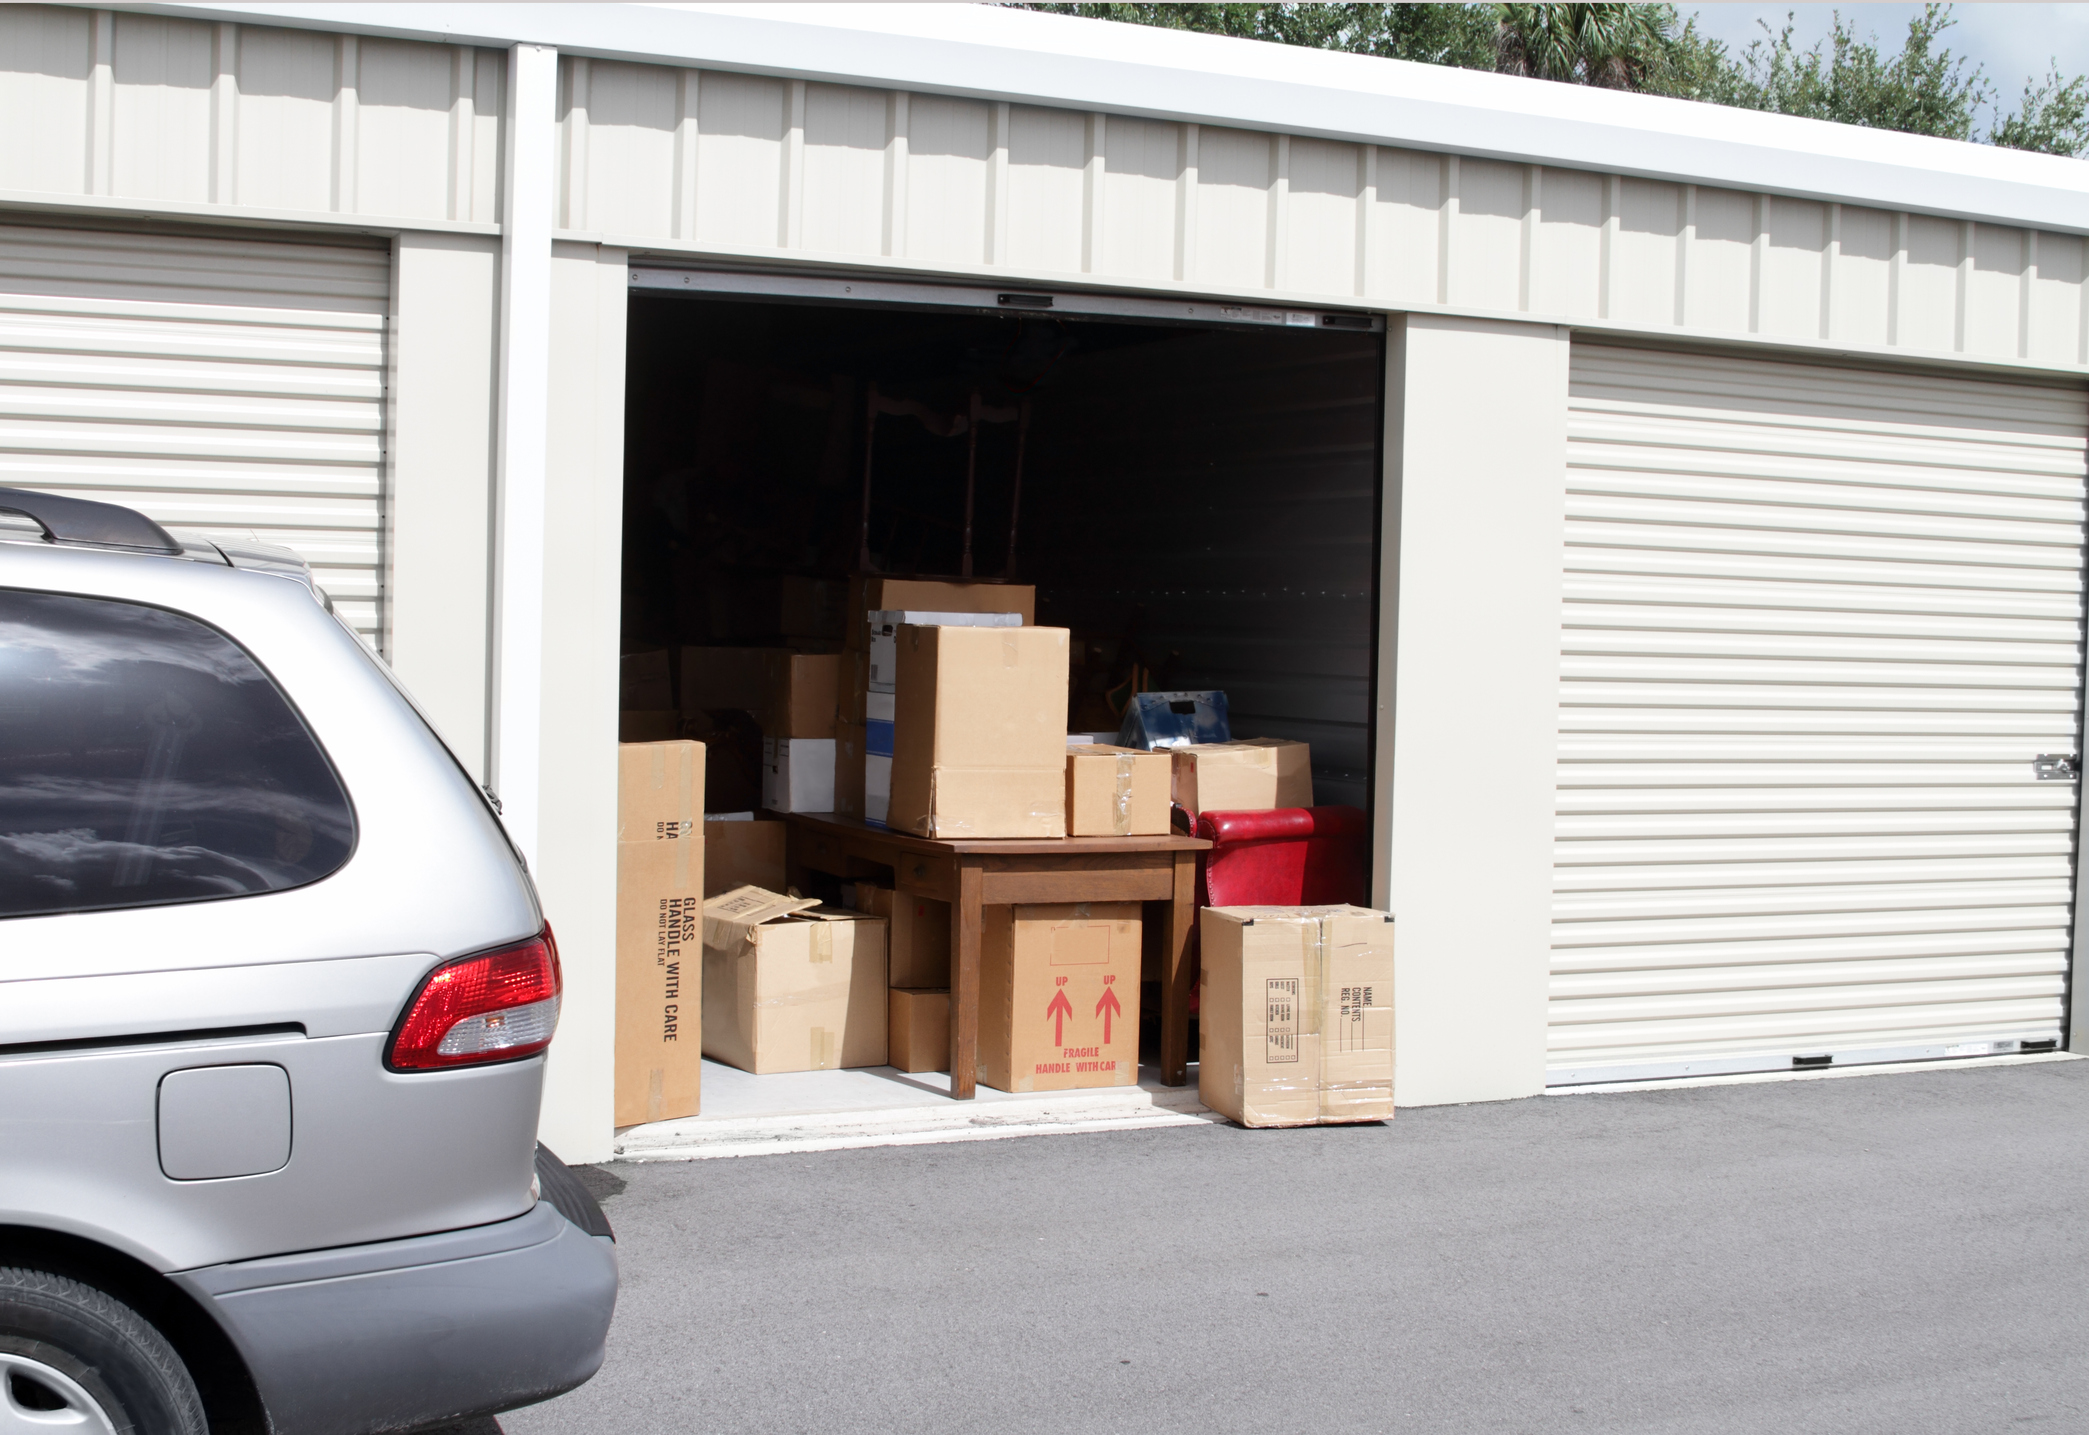 The Top 10 Weirdest Things to Come Out of a Storage Unit Ever